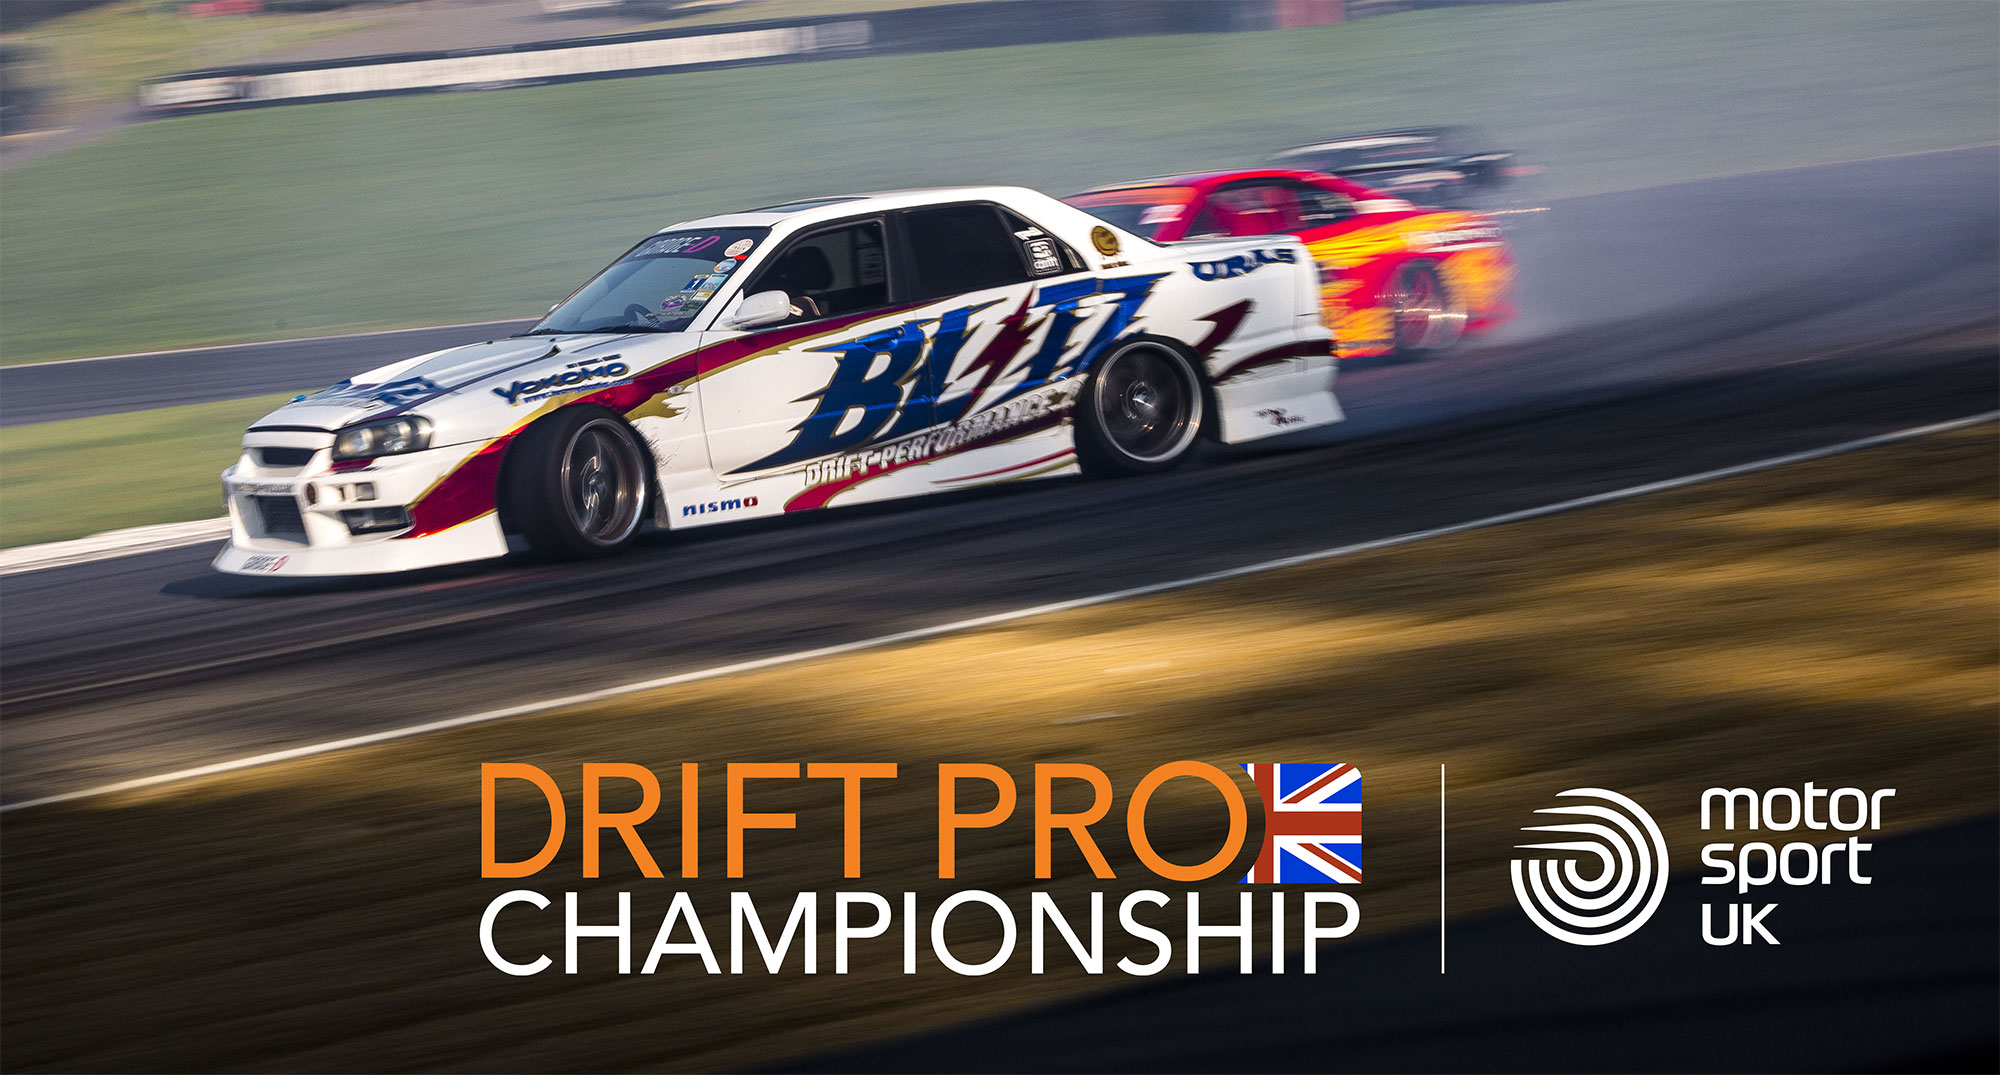 Drift Pro Championship prepares to launch in 2021.